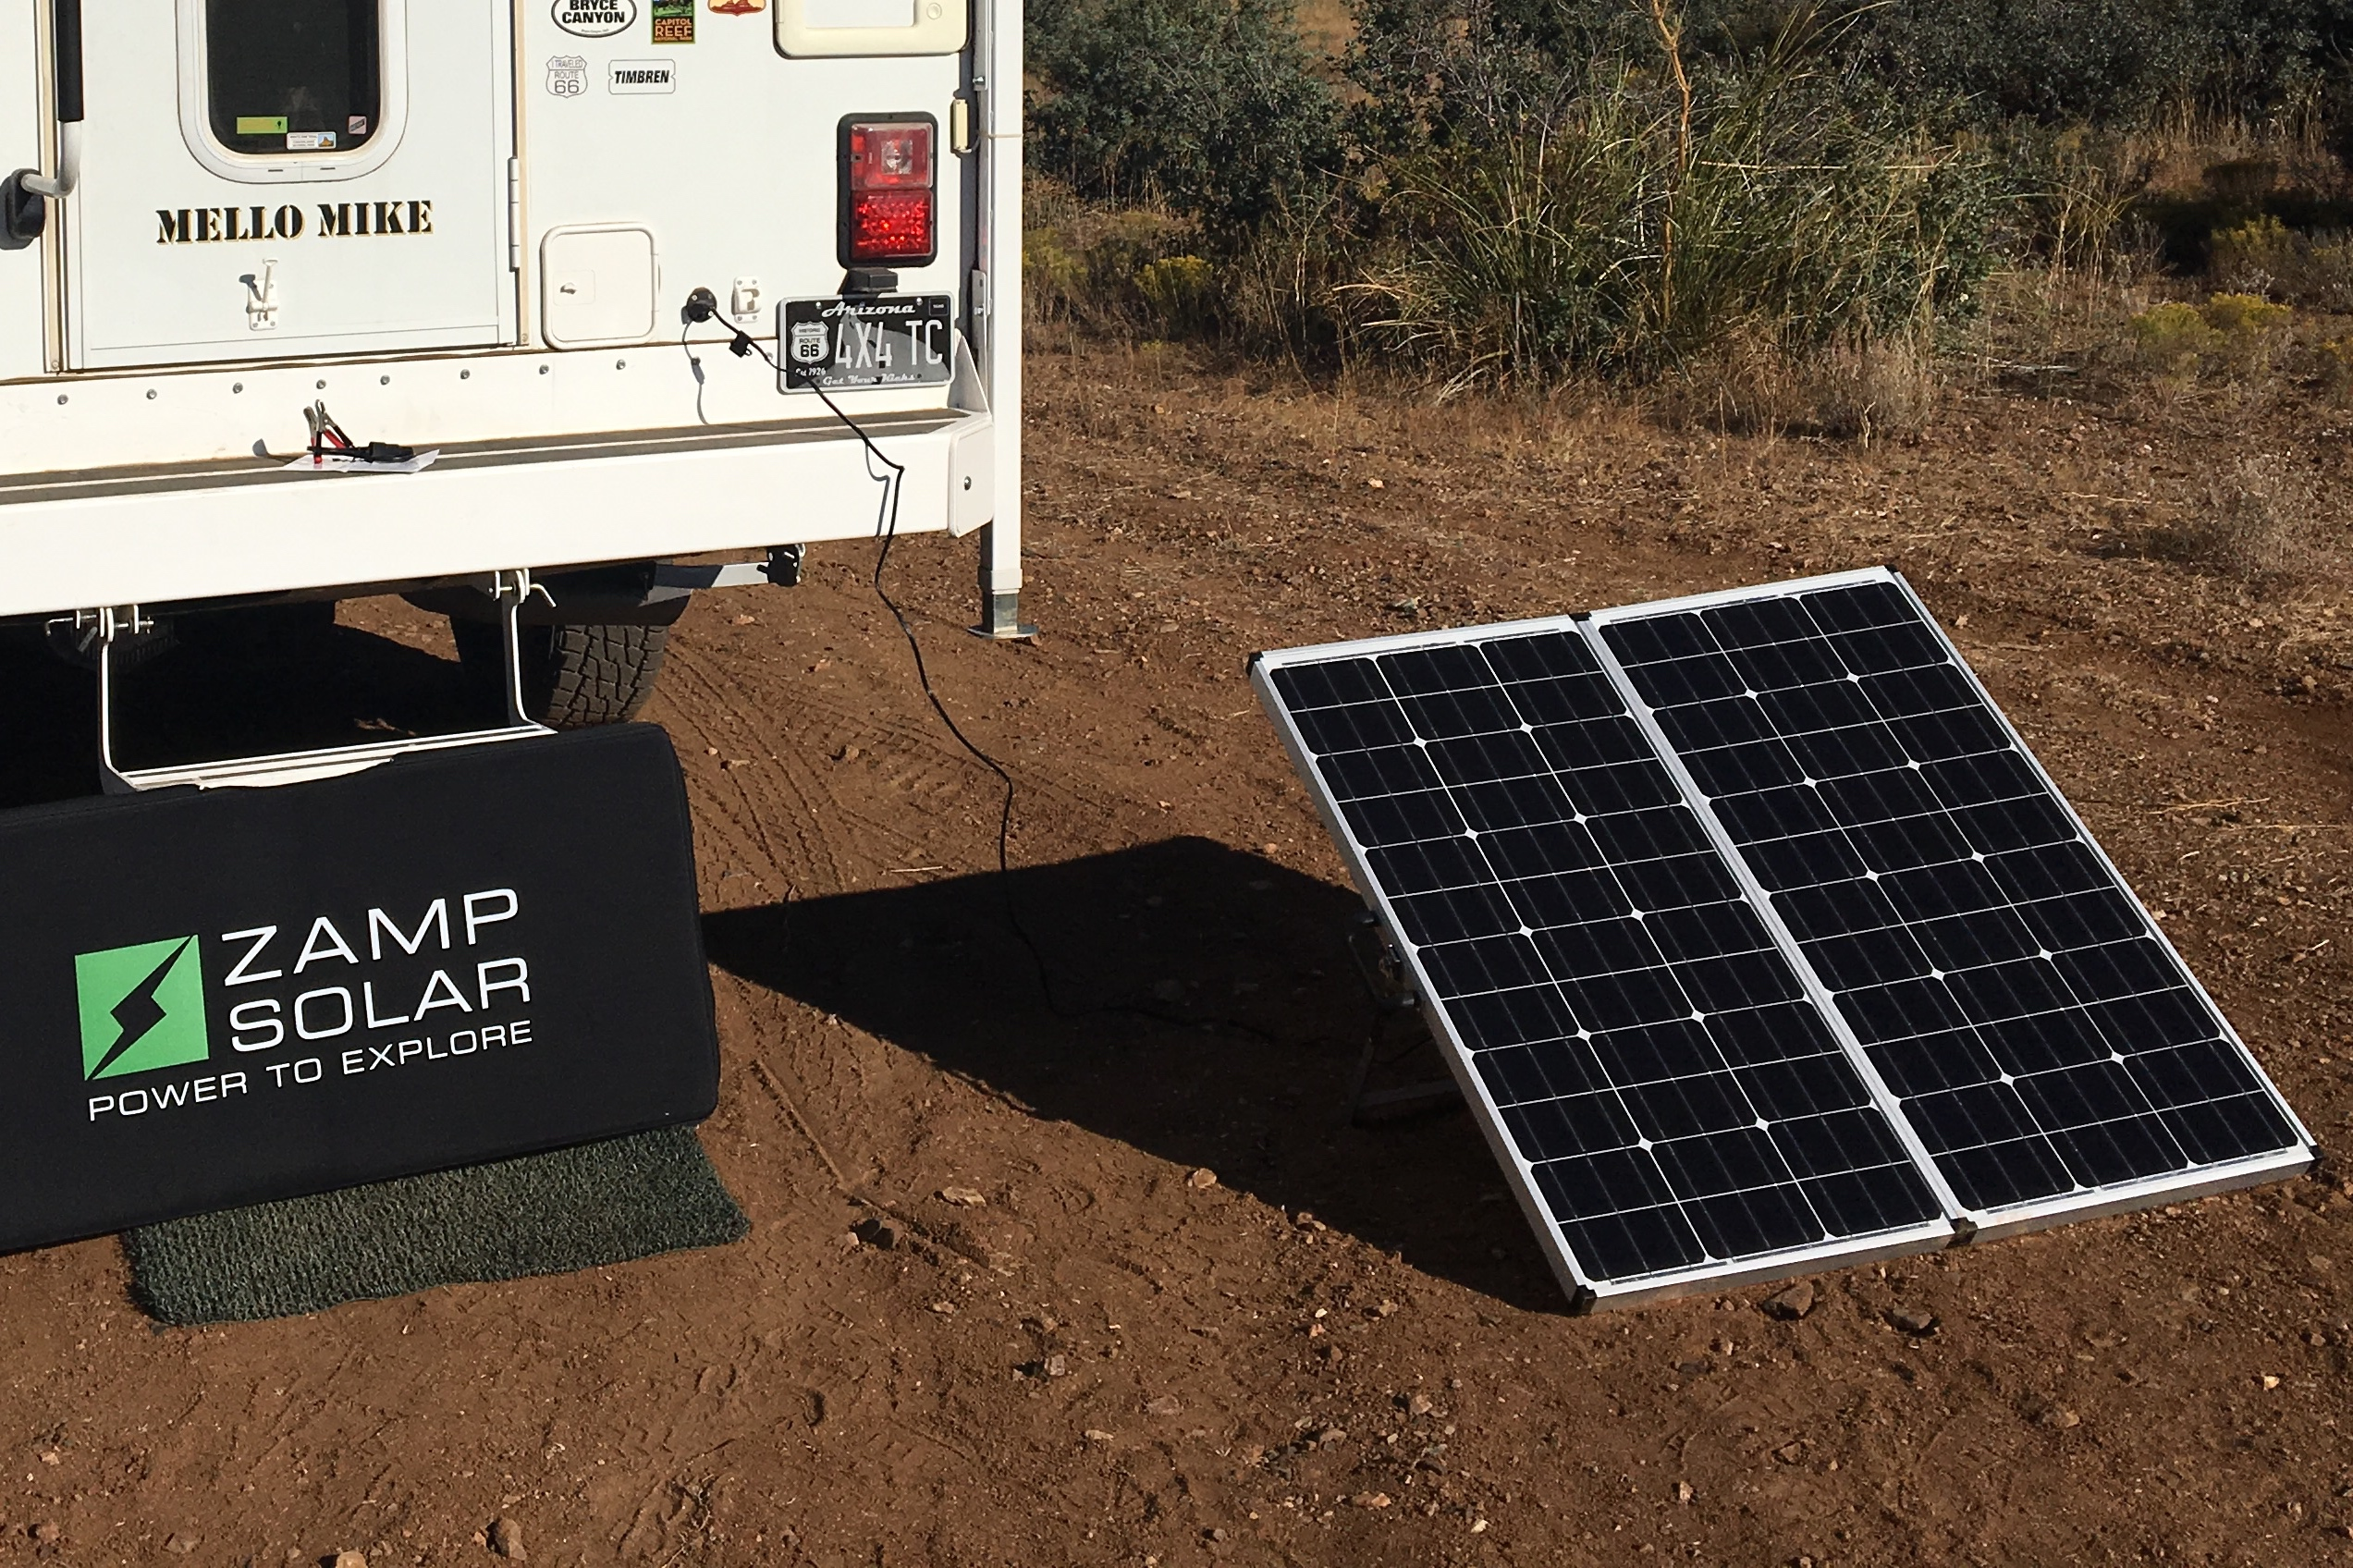 Review Of Zamp Solars 160 Watt Portable System Truck Camper Adventure Wiring In Solar Cells Might Stop Reflecting Light One Up